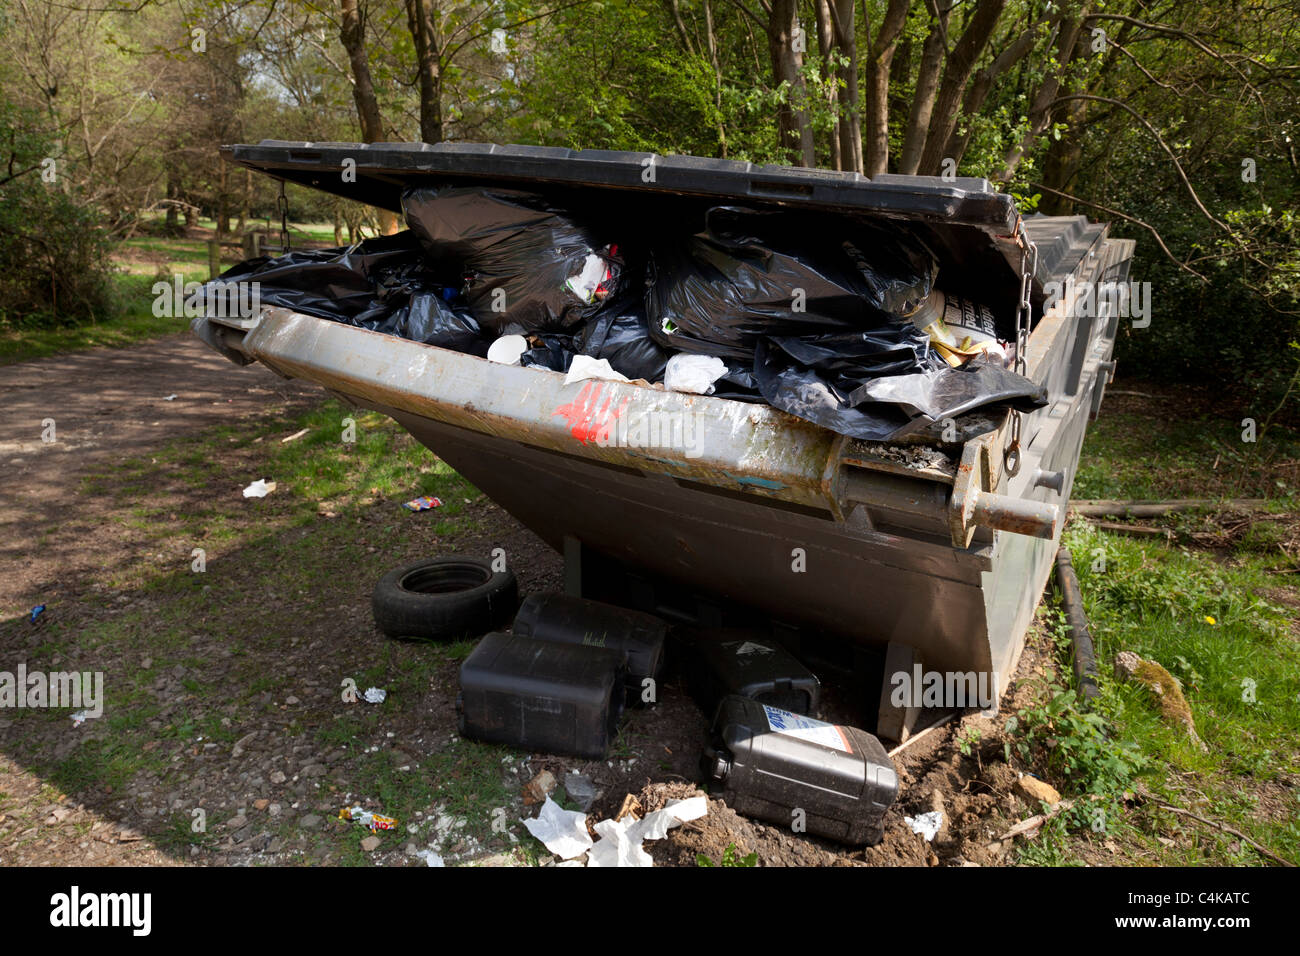 over full rubbish skip in countryside location - Stock Image